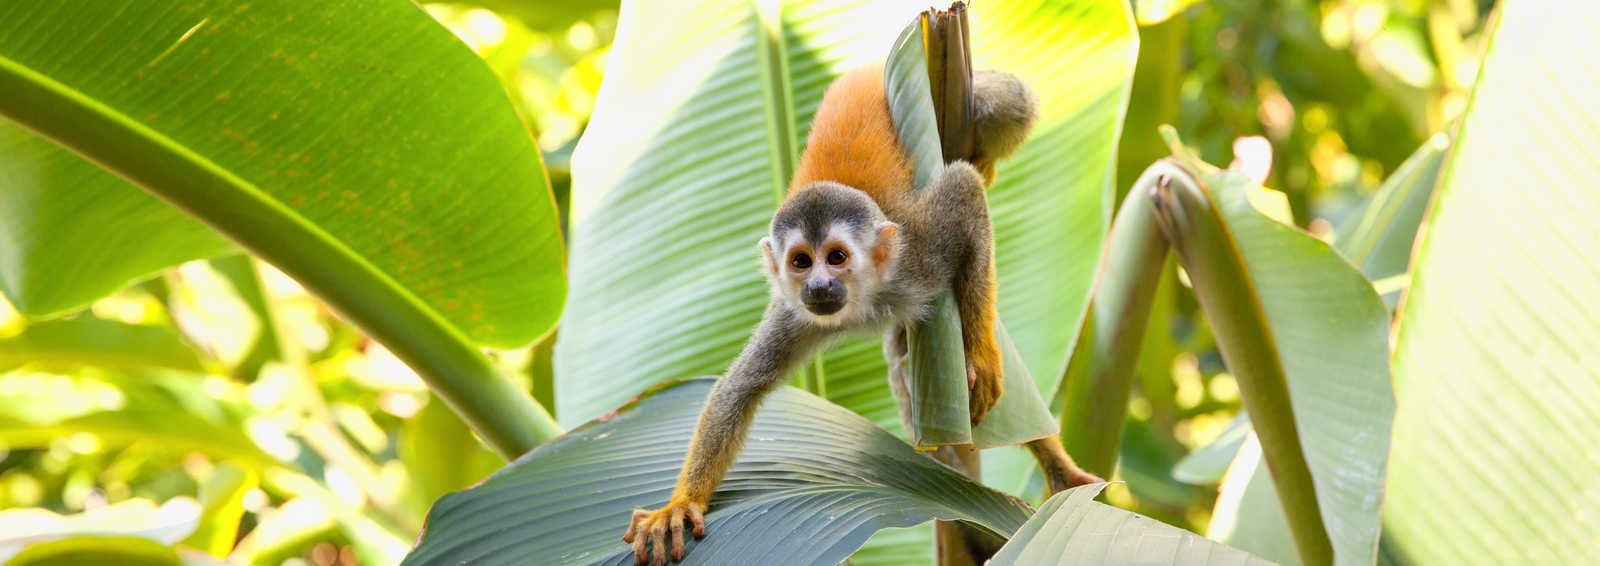 Squirrel Monkey on a palm leaf in Manuel Antonio, Costa Rica